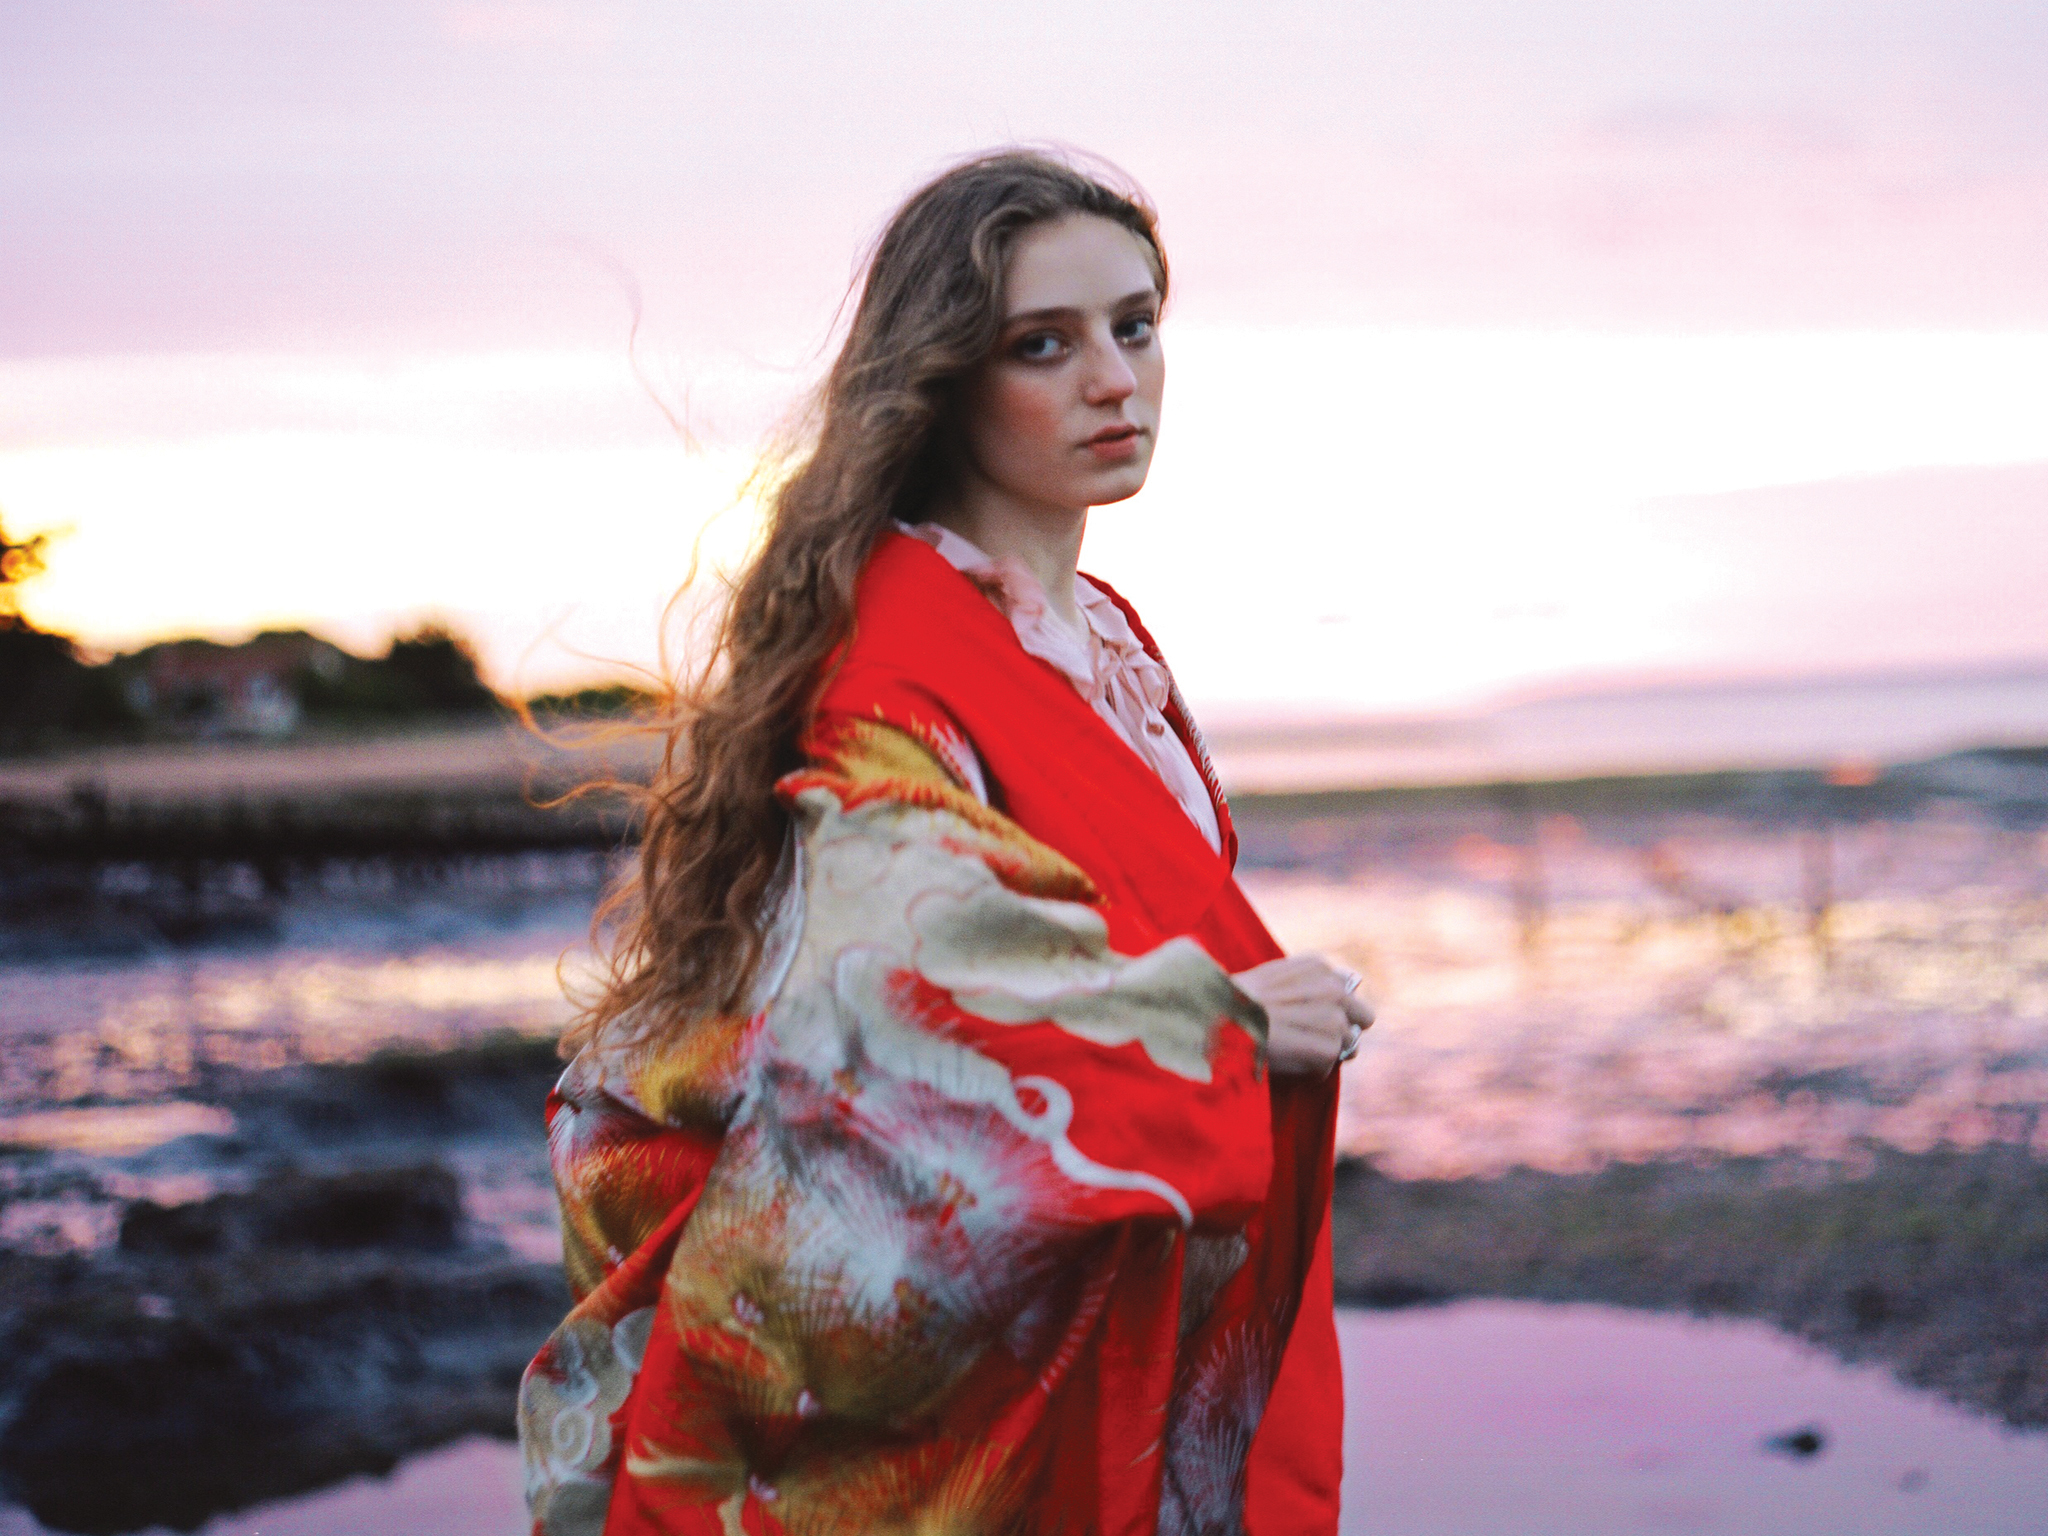 Singer-songwriter Birdy on her rise to stardom and new album 'Beautiful Lies'